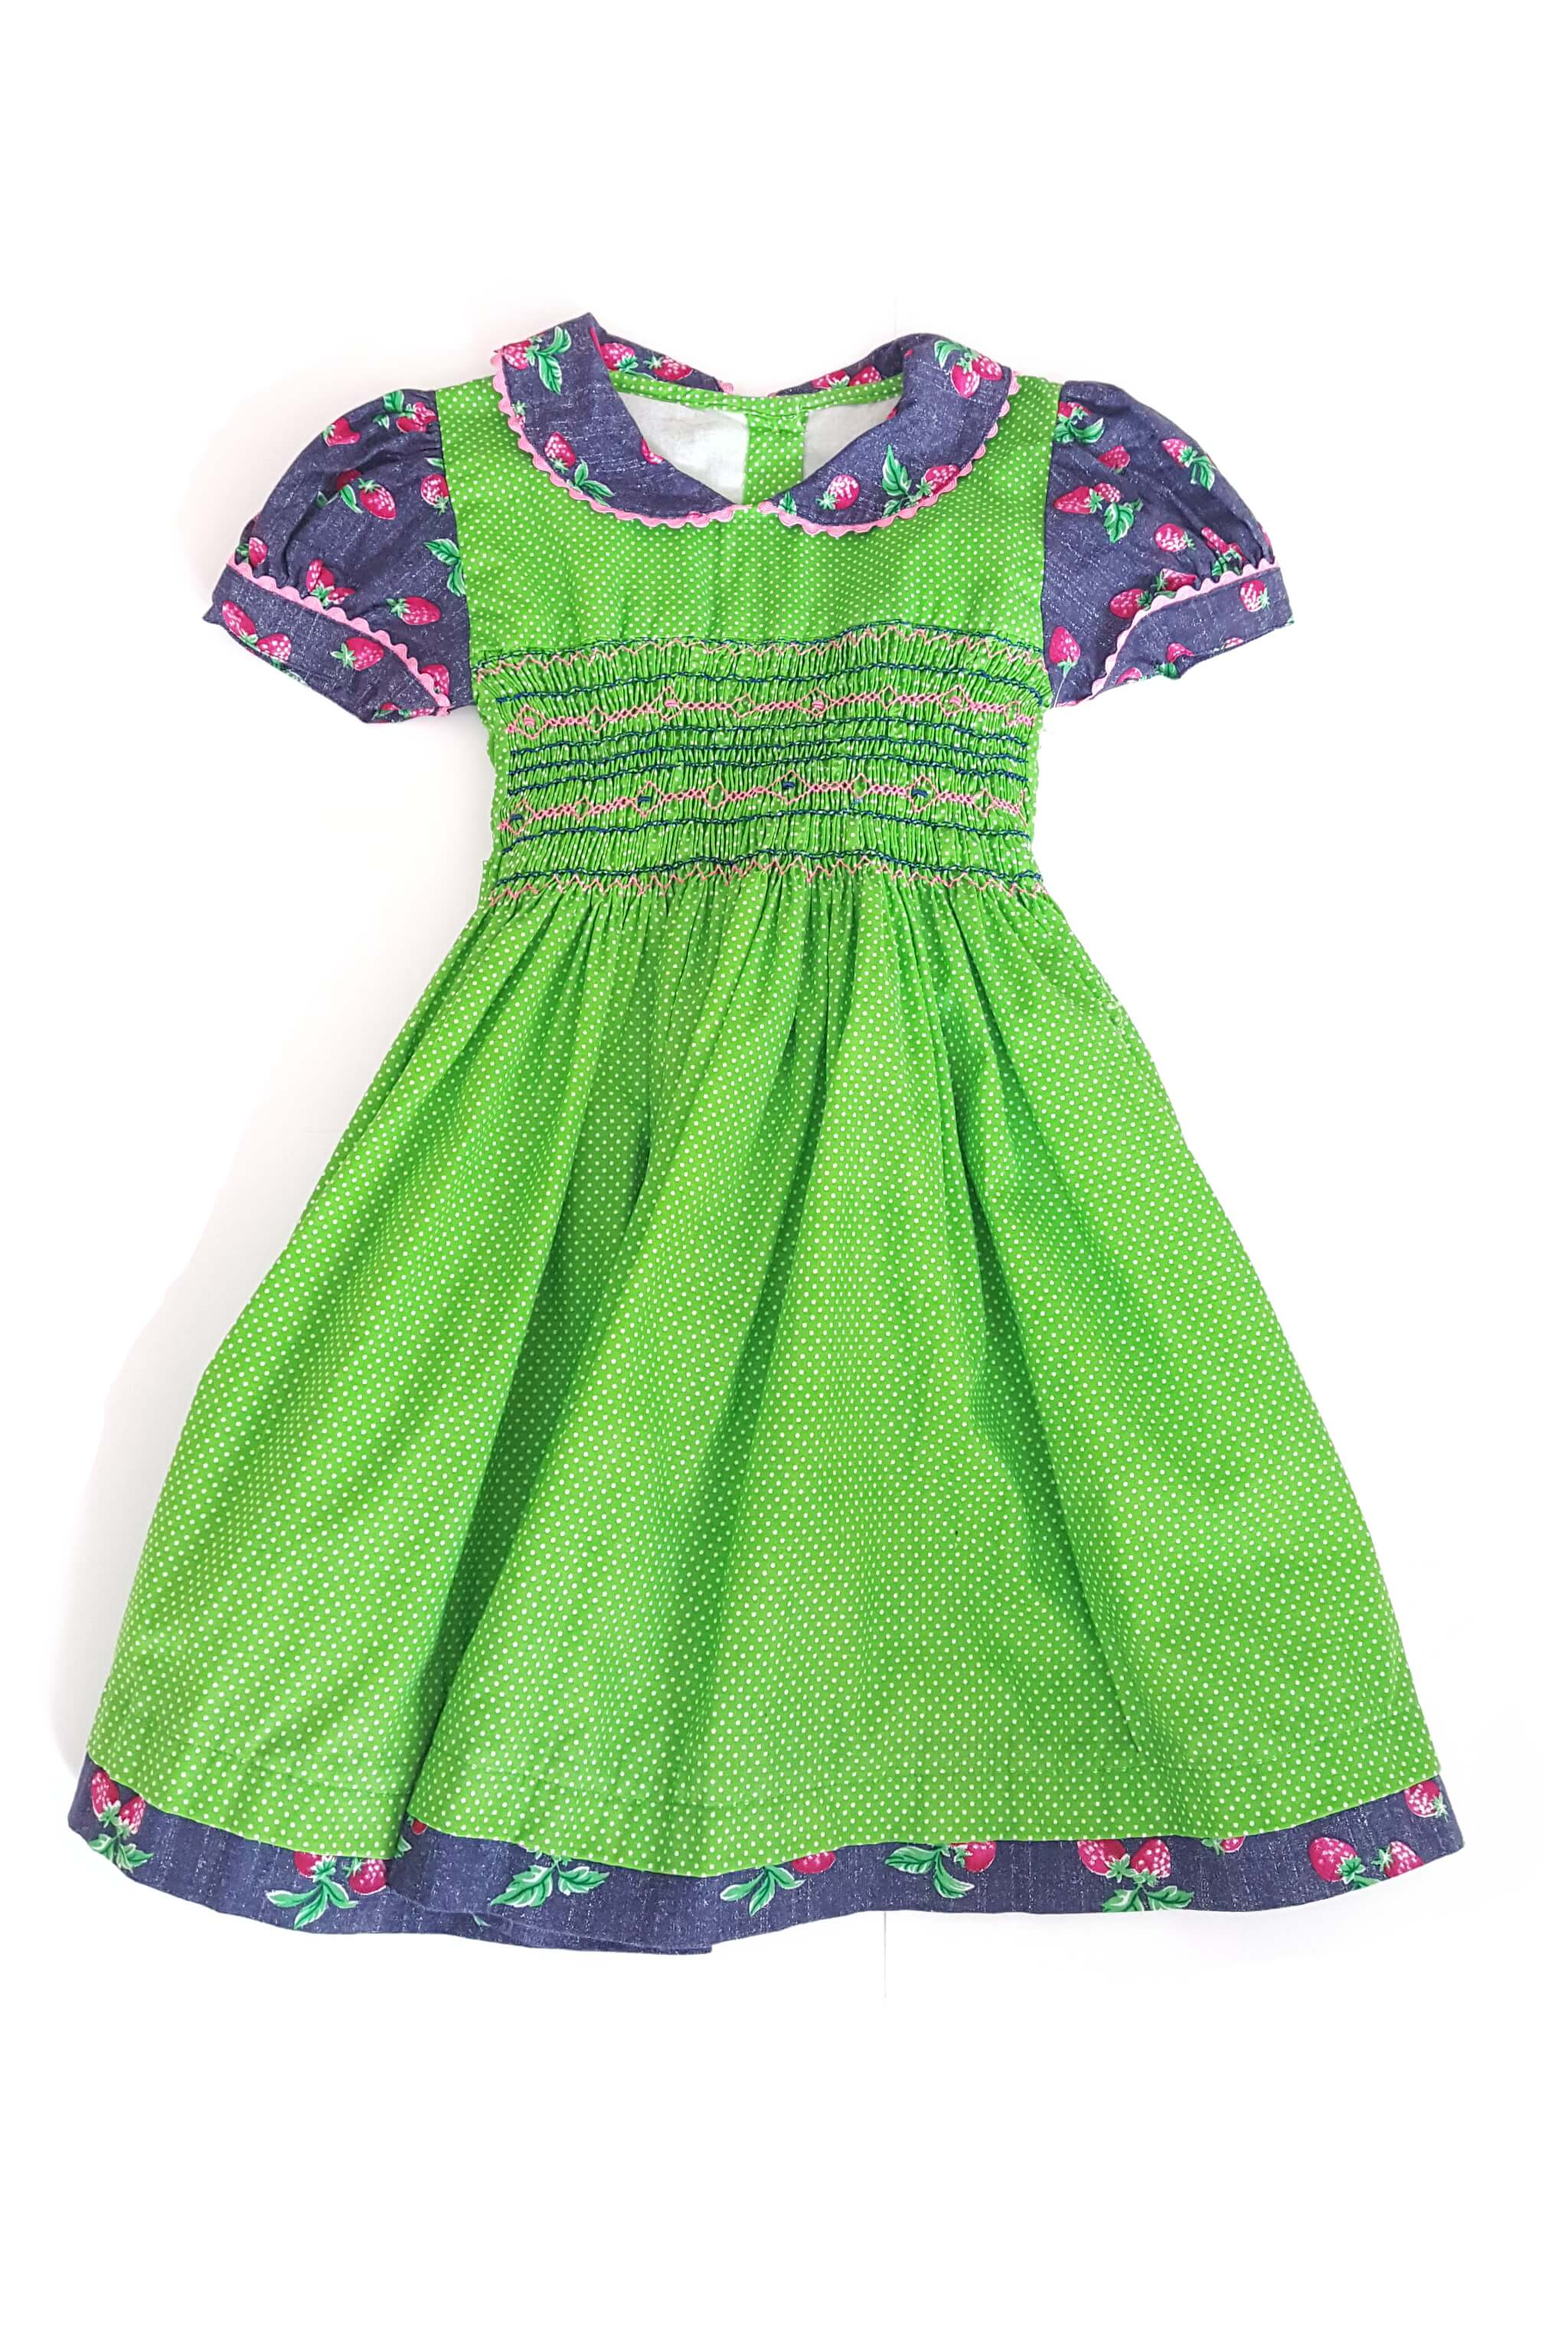 Front of short sleeved apple green pin dot Jade dress with contrasting strawberry print peter pan collar, and traditional hand-smocked bodice